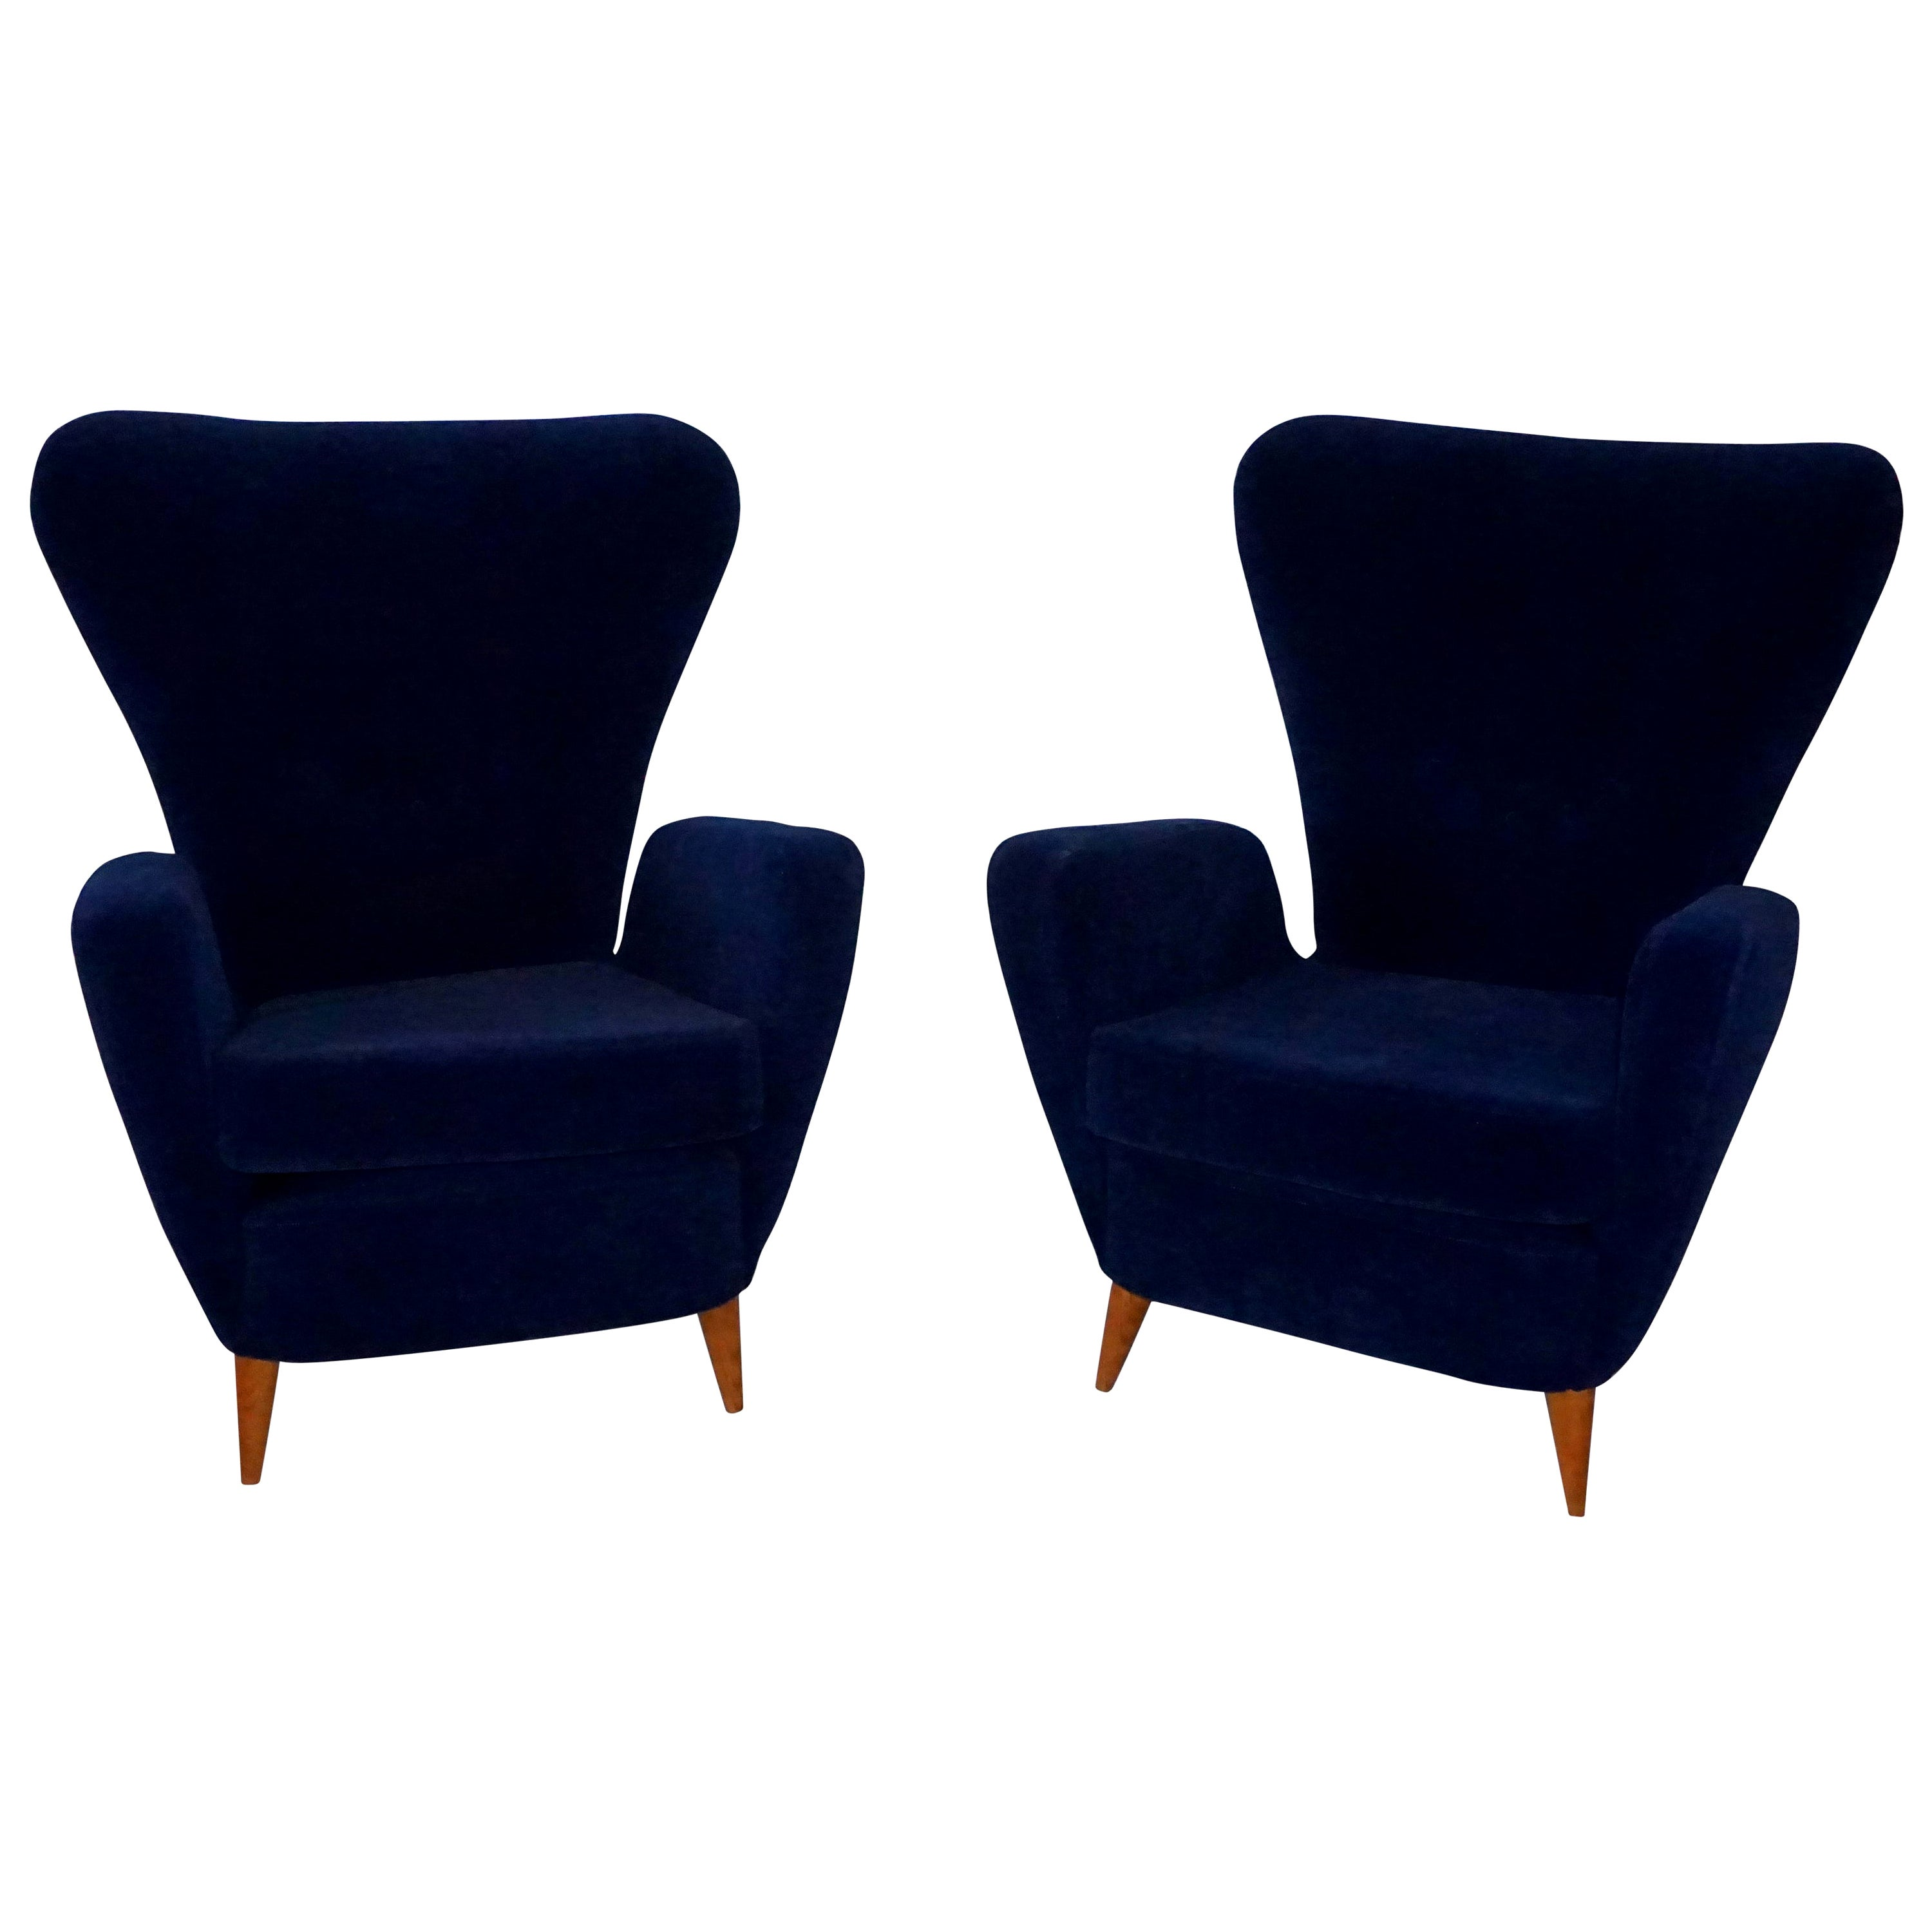 20th Century Italian Pair of Dark Blue Lounge Chairs by Paolo Buffa